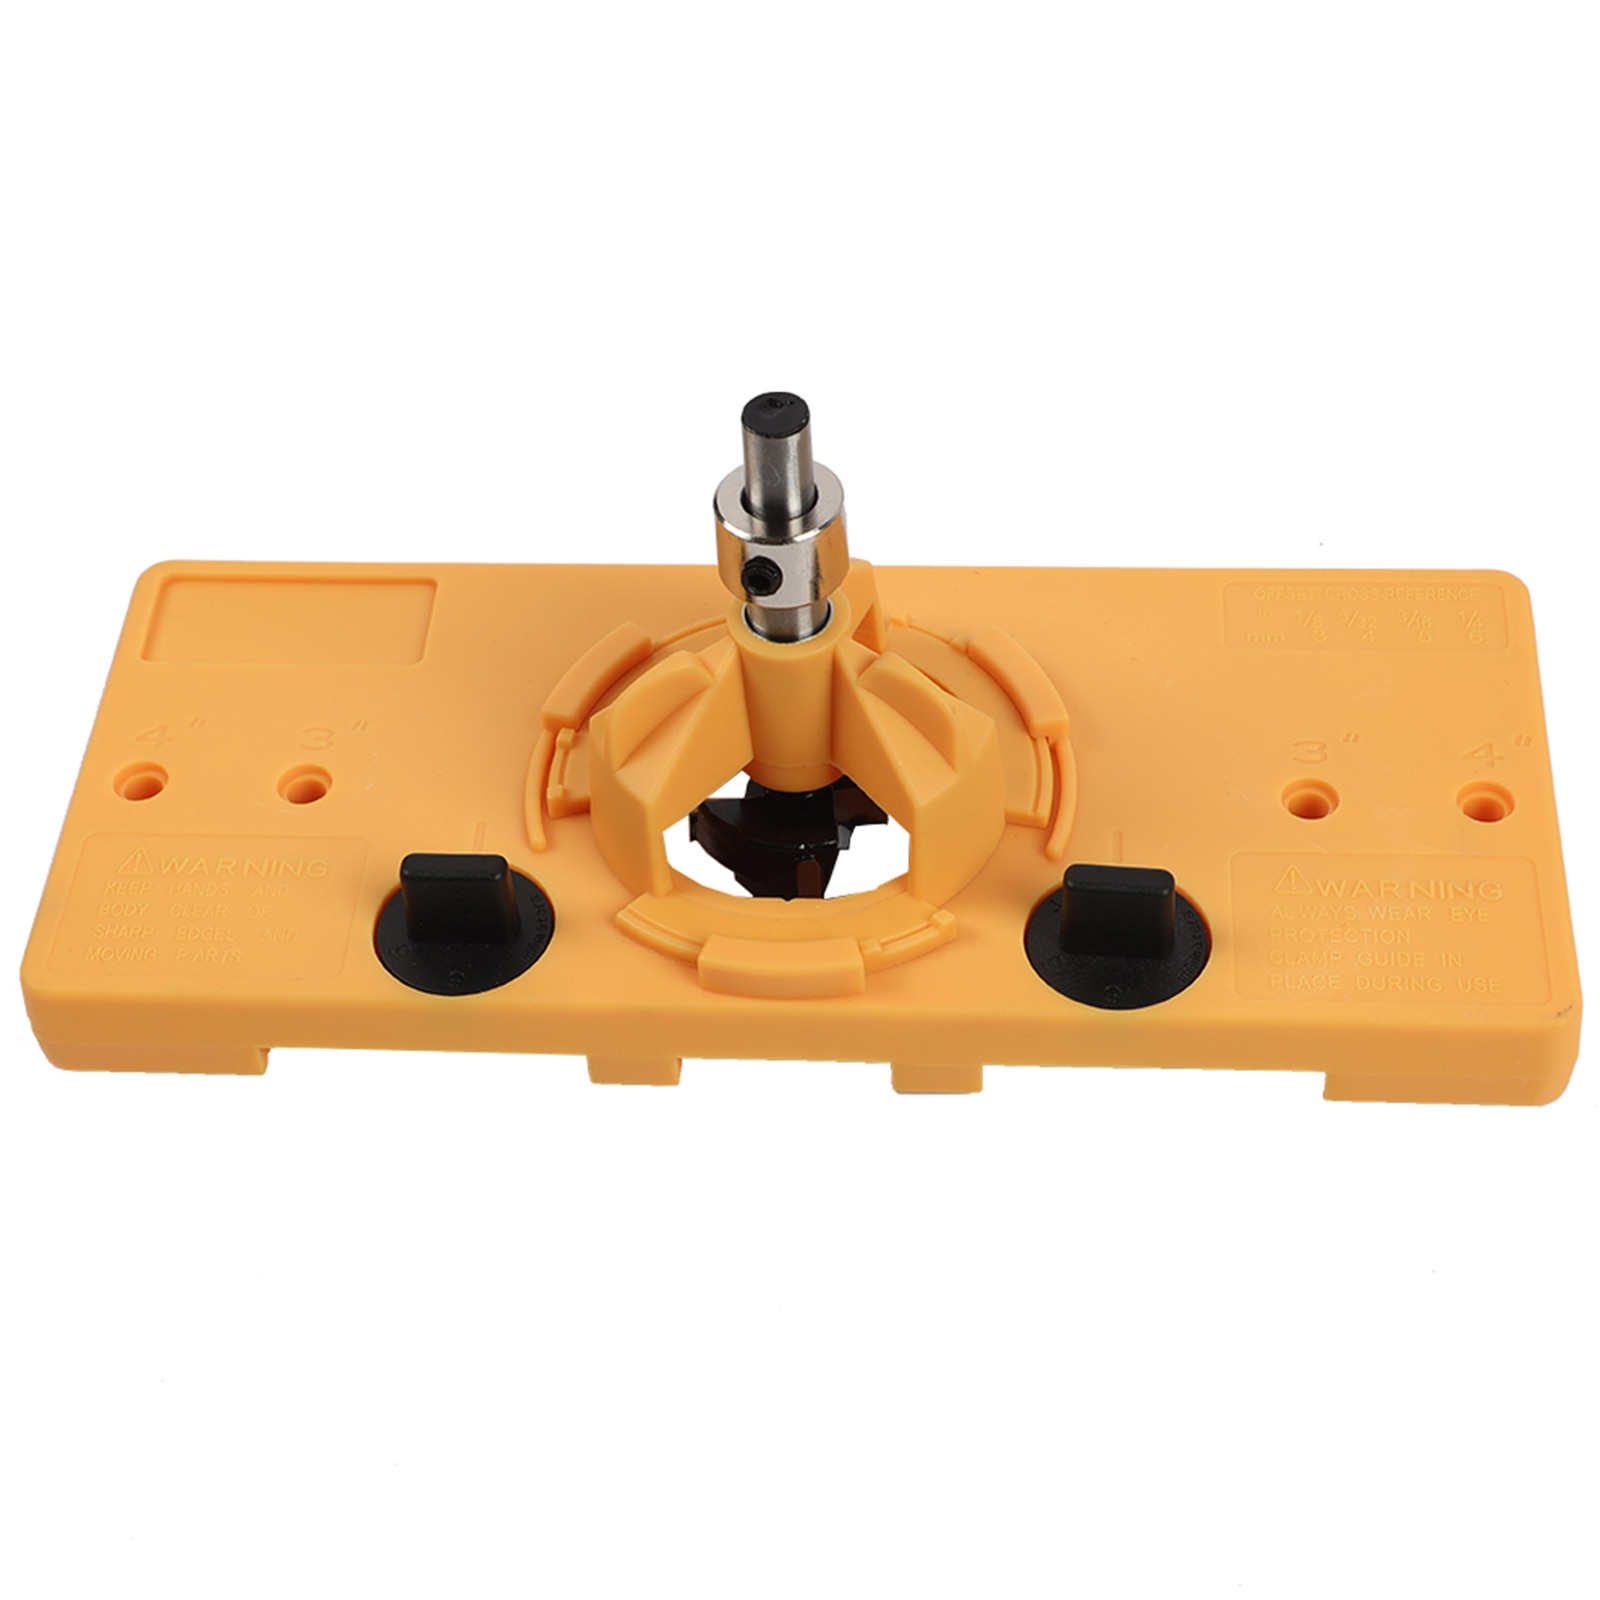 15-35MM Cup Style Hinge Jig Boring Hole Drill Guide + Forstner Bit Wood Cutter Carpenter Woodworking DIY Tools